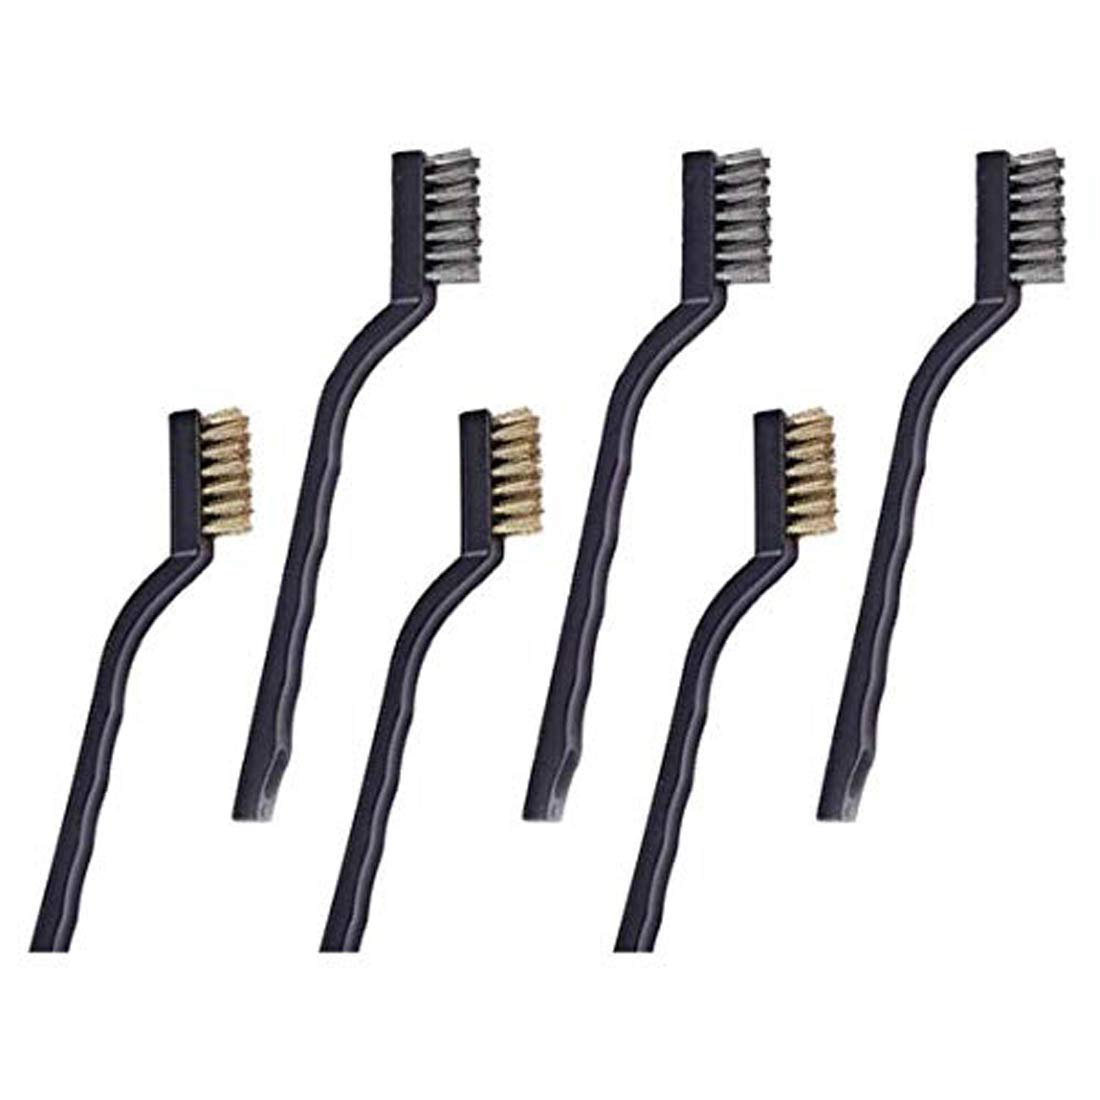 6 Piece Mini Wire Brush Set Brass Steel Nylon Hobby Crafts Cleaning Multi Use